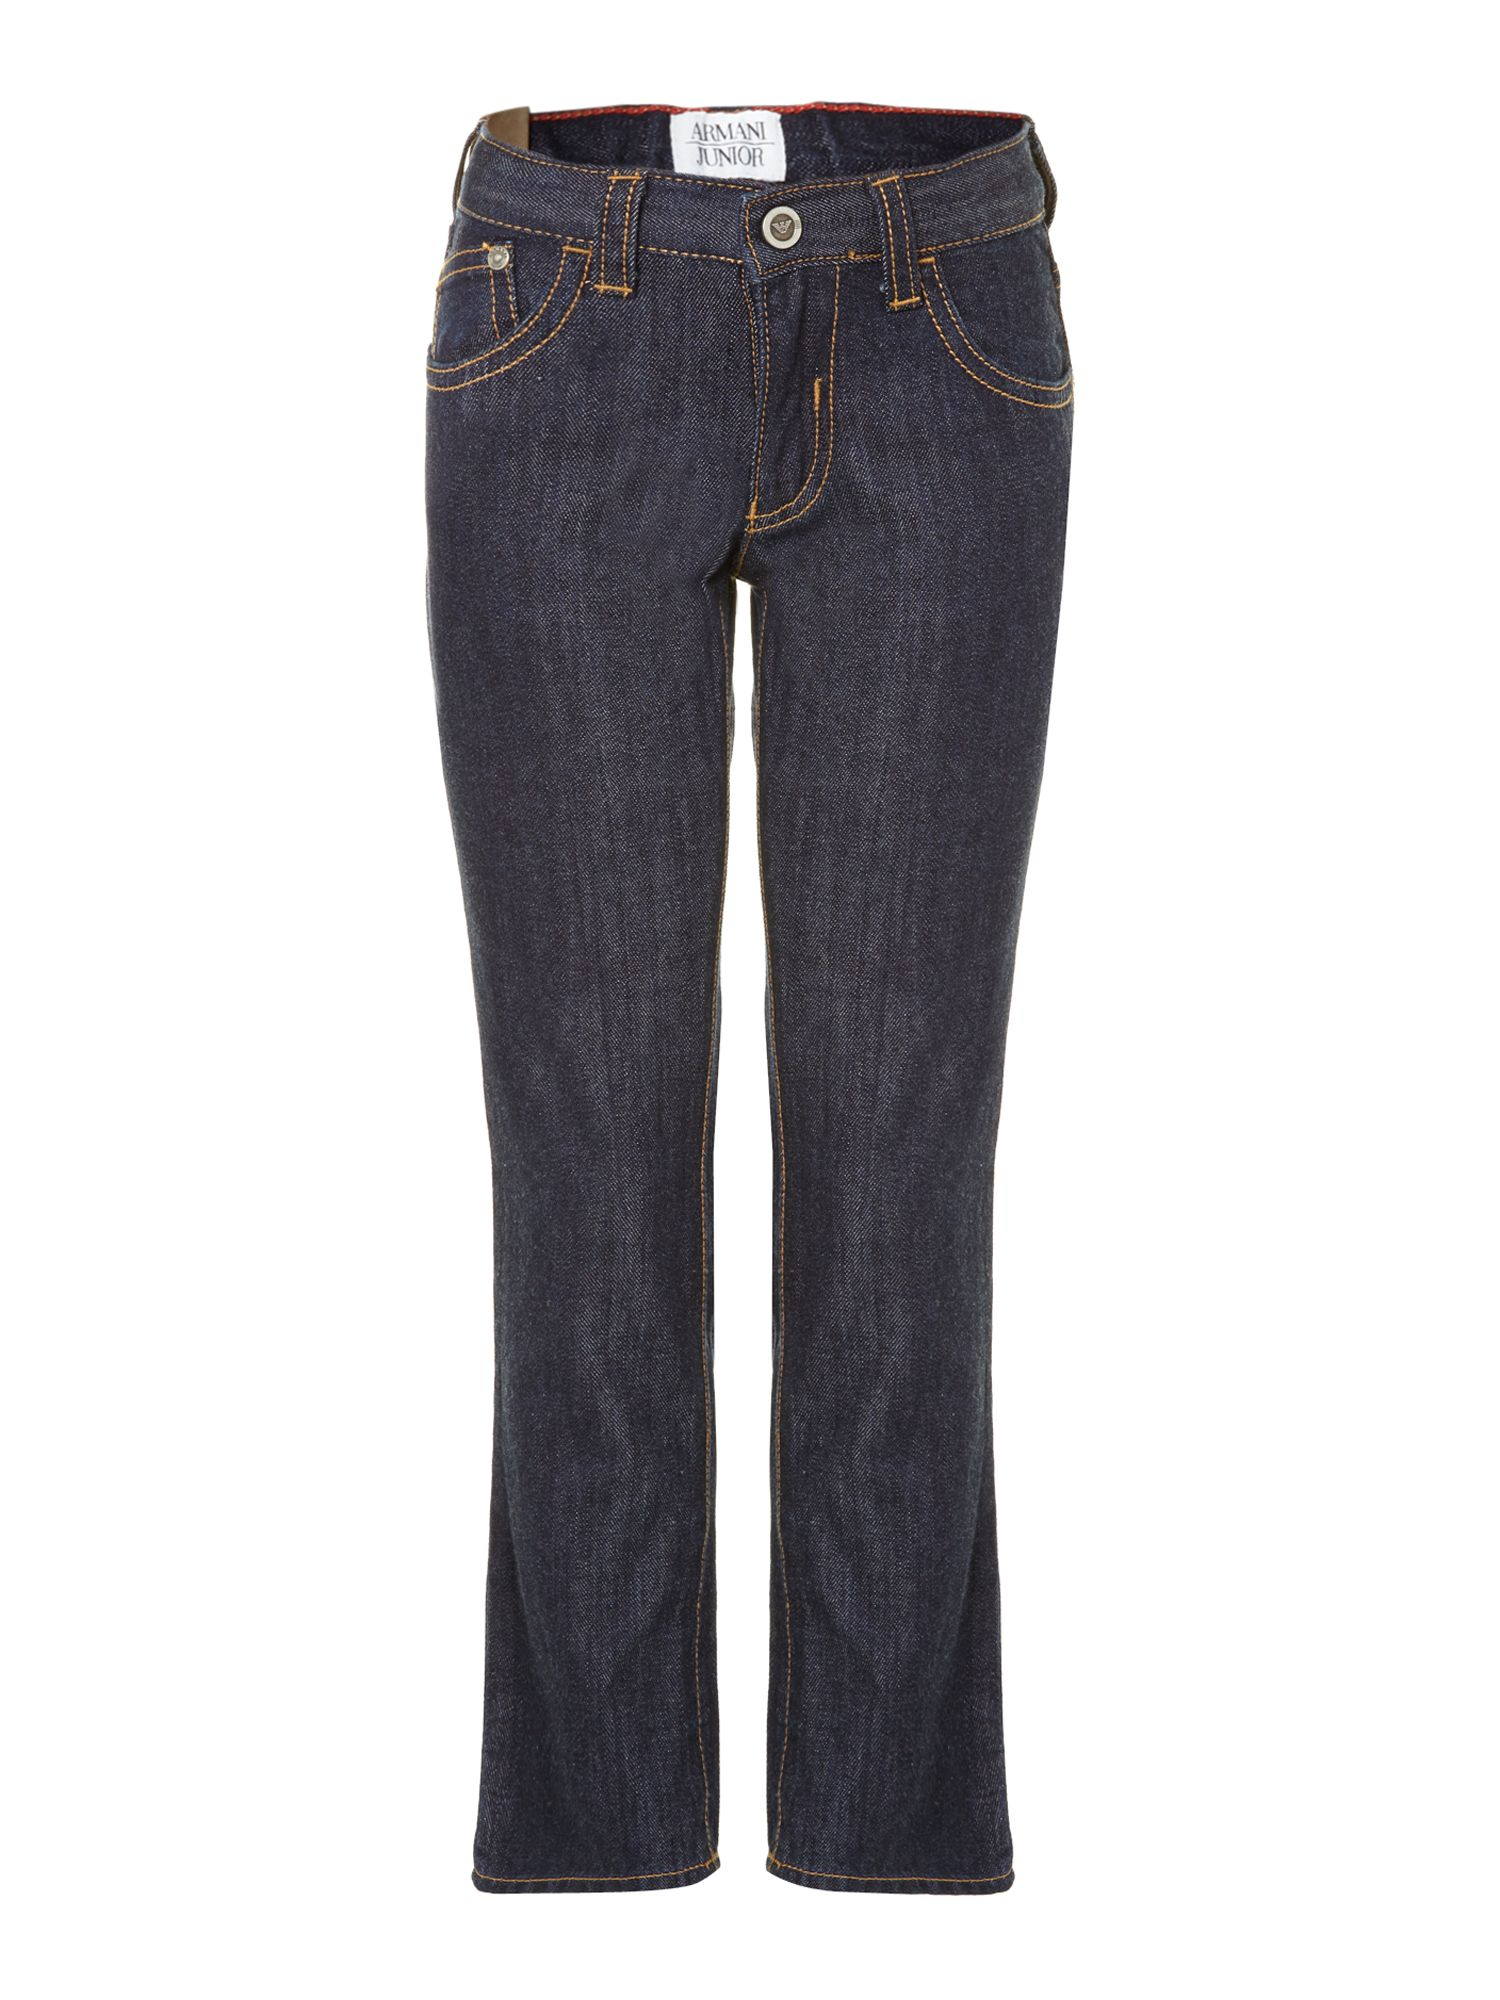 Boys dark wash jeans